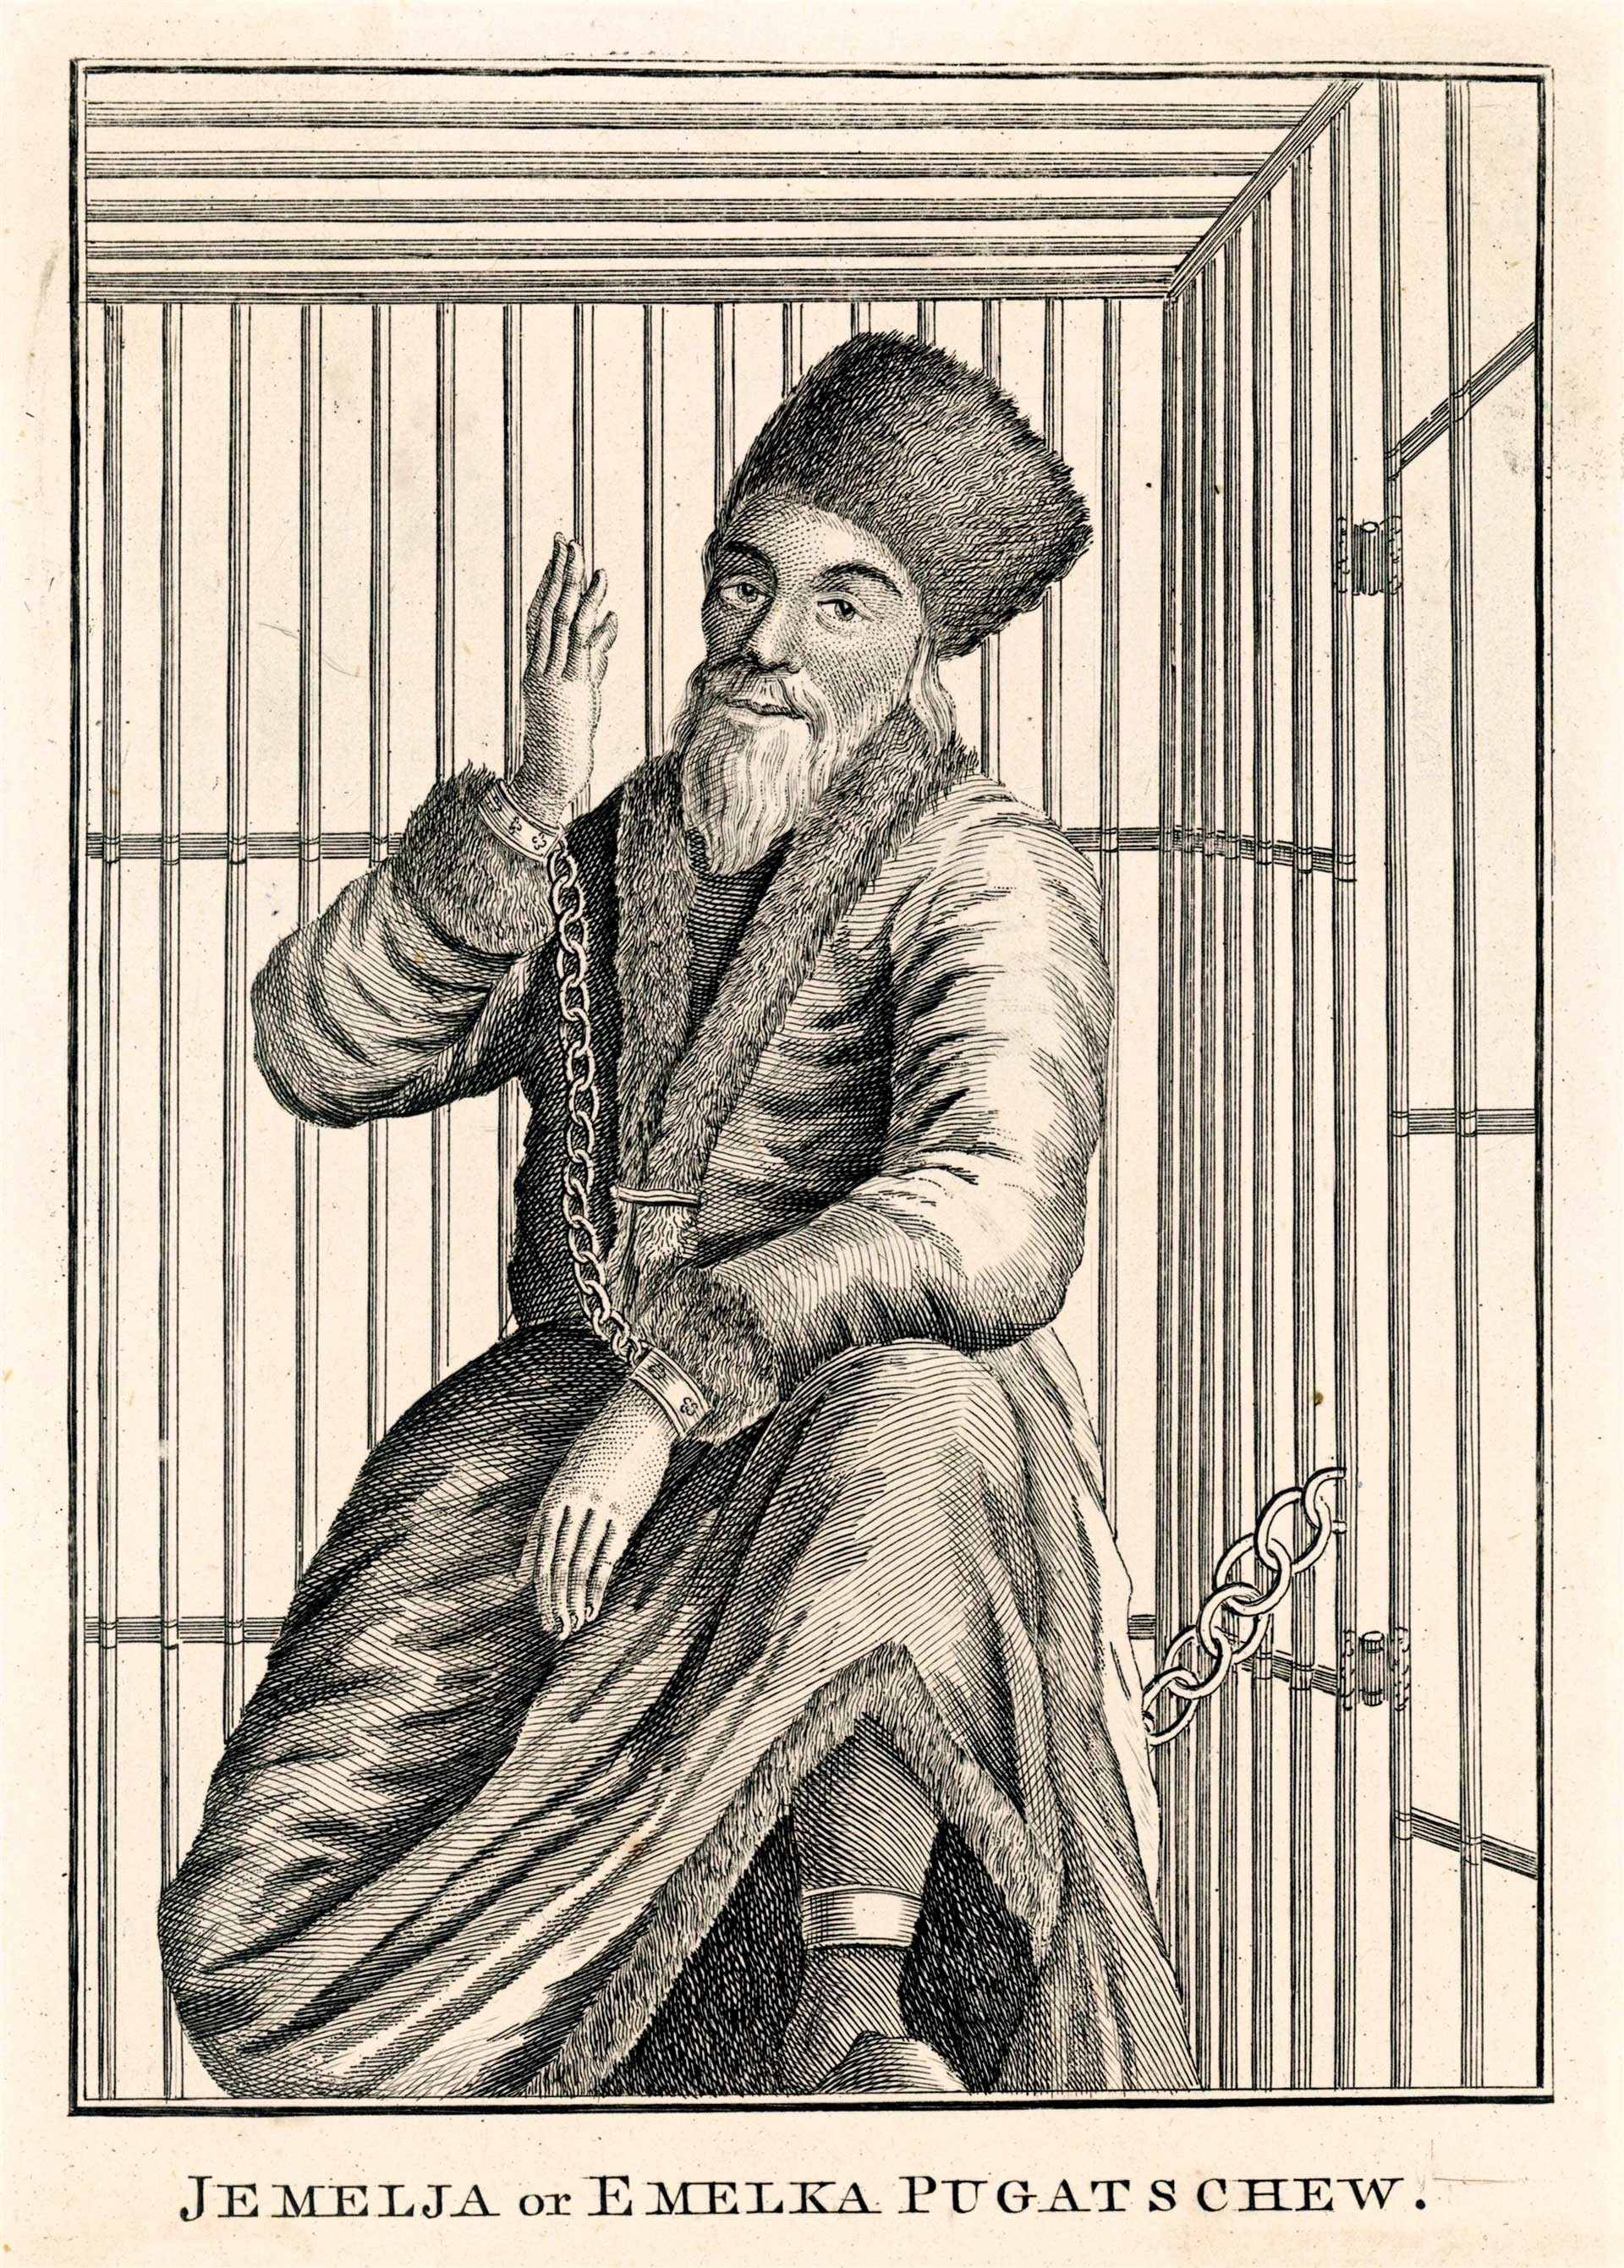 Pugachev was brought to Moscow in a wooden cage. Engraving by an unnamed artist in Caulfield's Wonderful Characters.